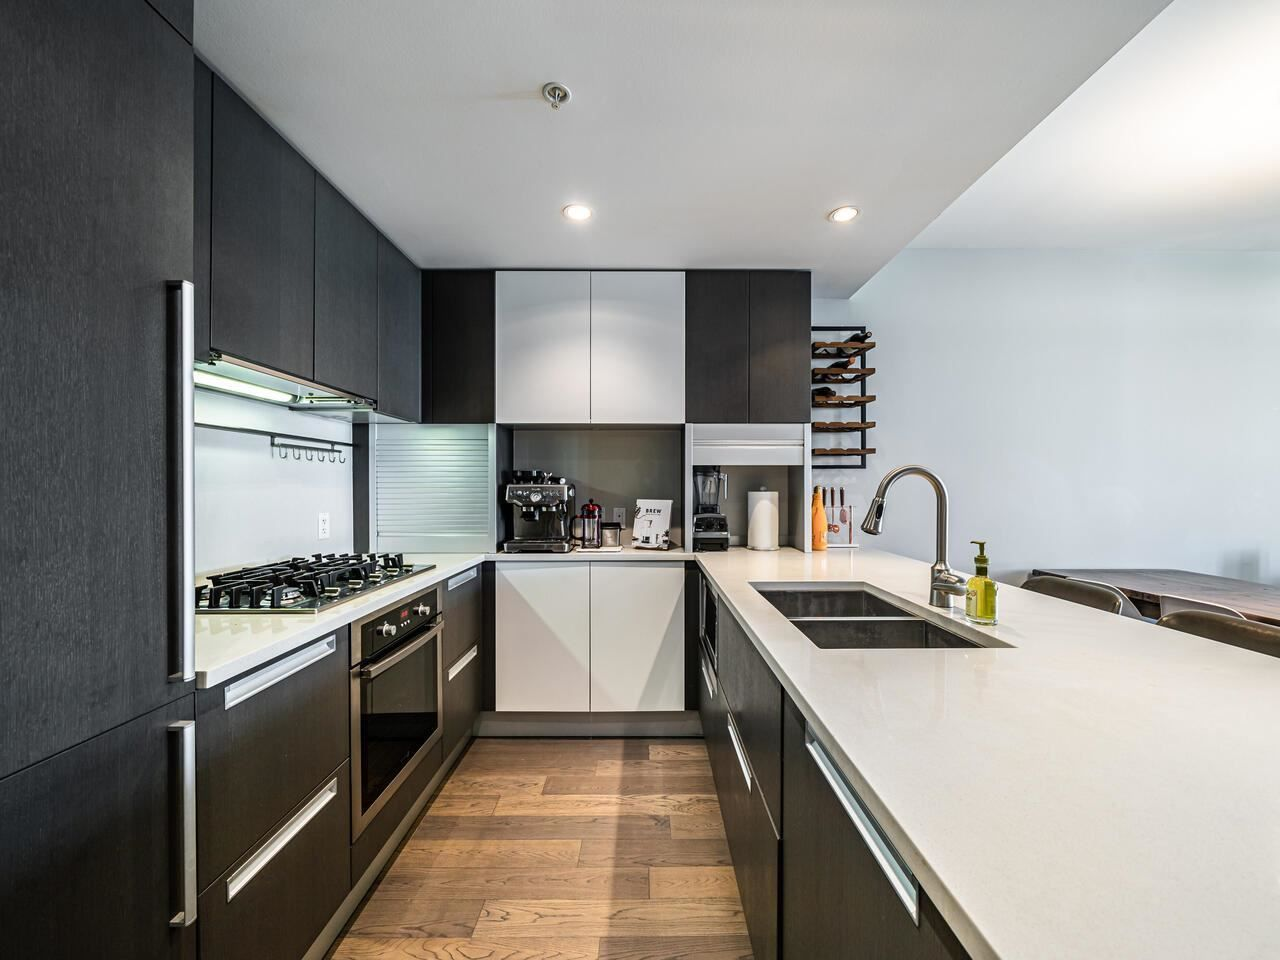 """Main Photo: 1202 288 W 1ST Avenue in Vancouver: False Creek Condo for sale in """"The James"""" (Vancouver West)  : MLS®# R2589567"""